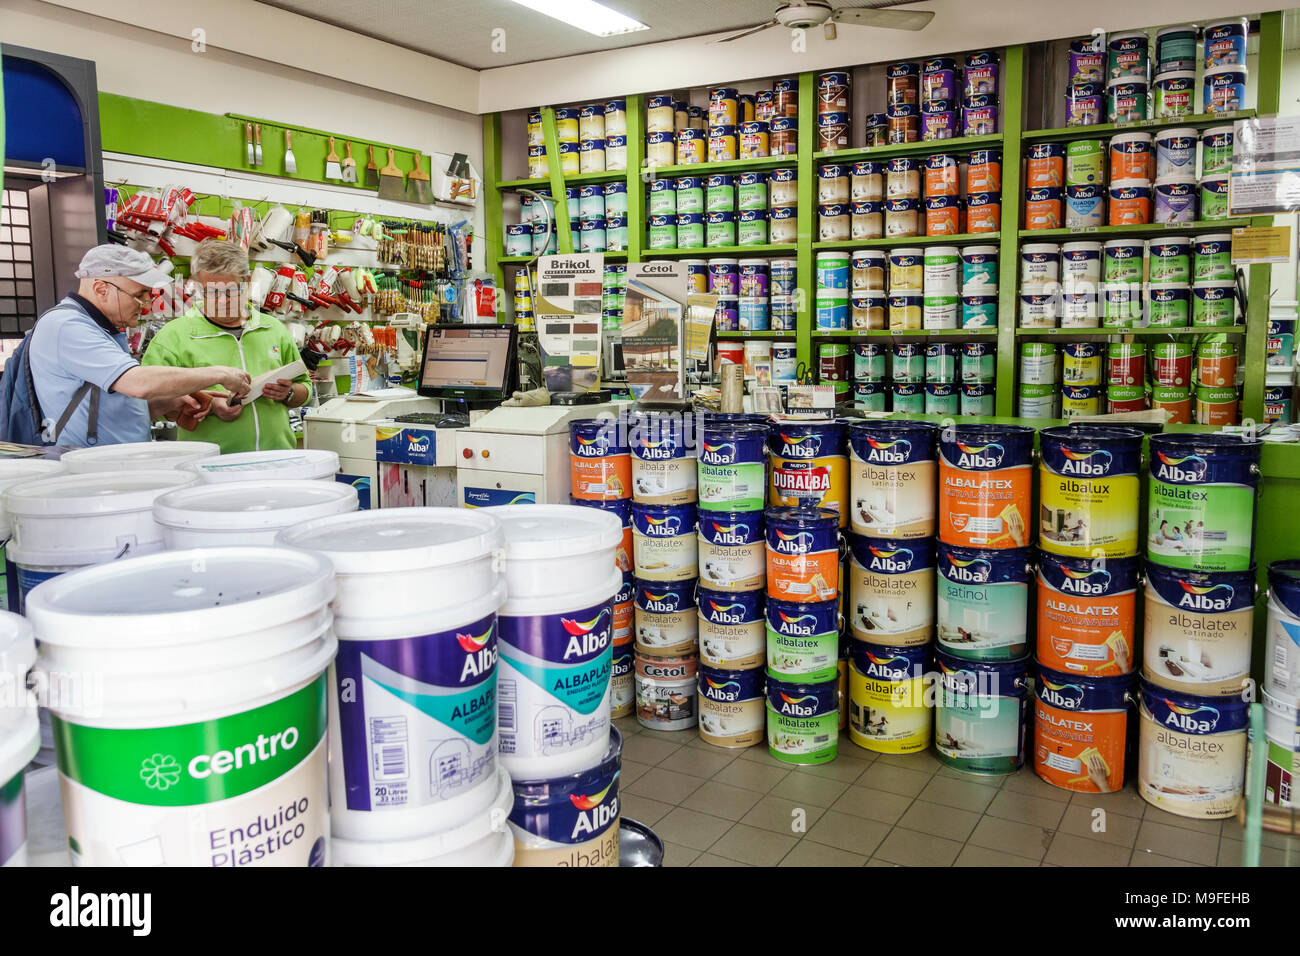 Buenos Aires Argentina Pinturerias del Centro paint store cans house painting supplies home improvement Alba brand man salesman customer Hispanic Argentinean Argentinian Argentine South America American - Stock Image